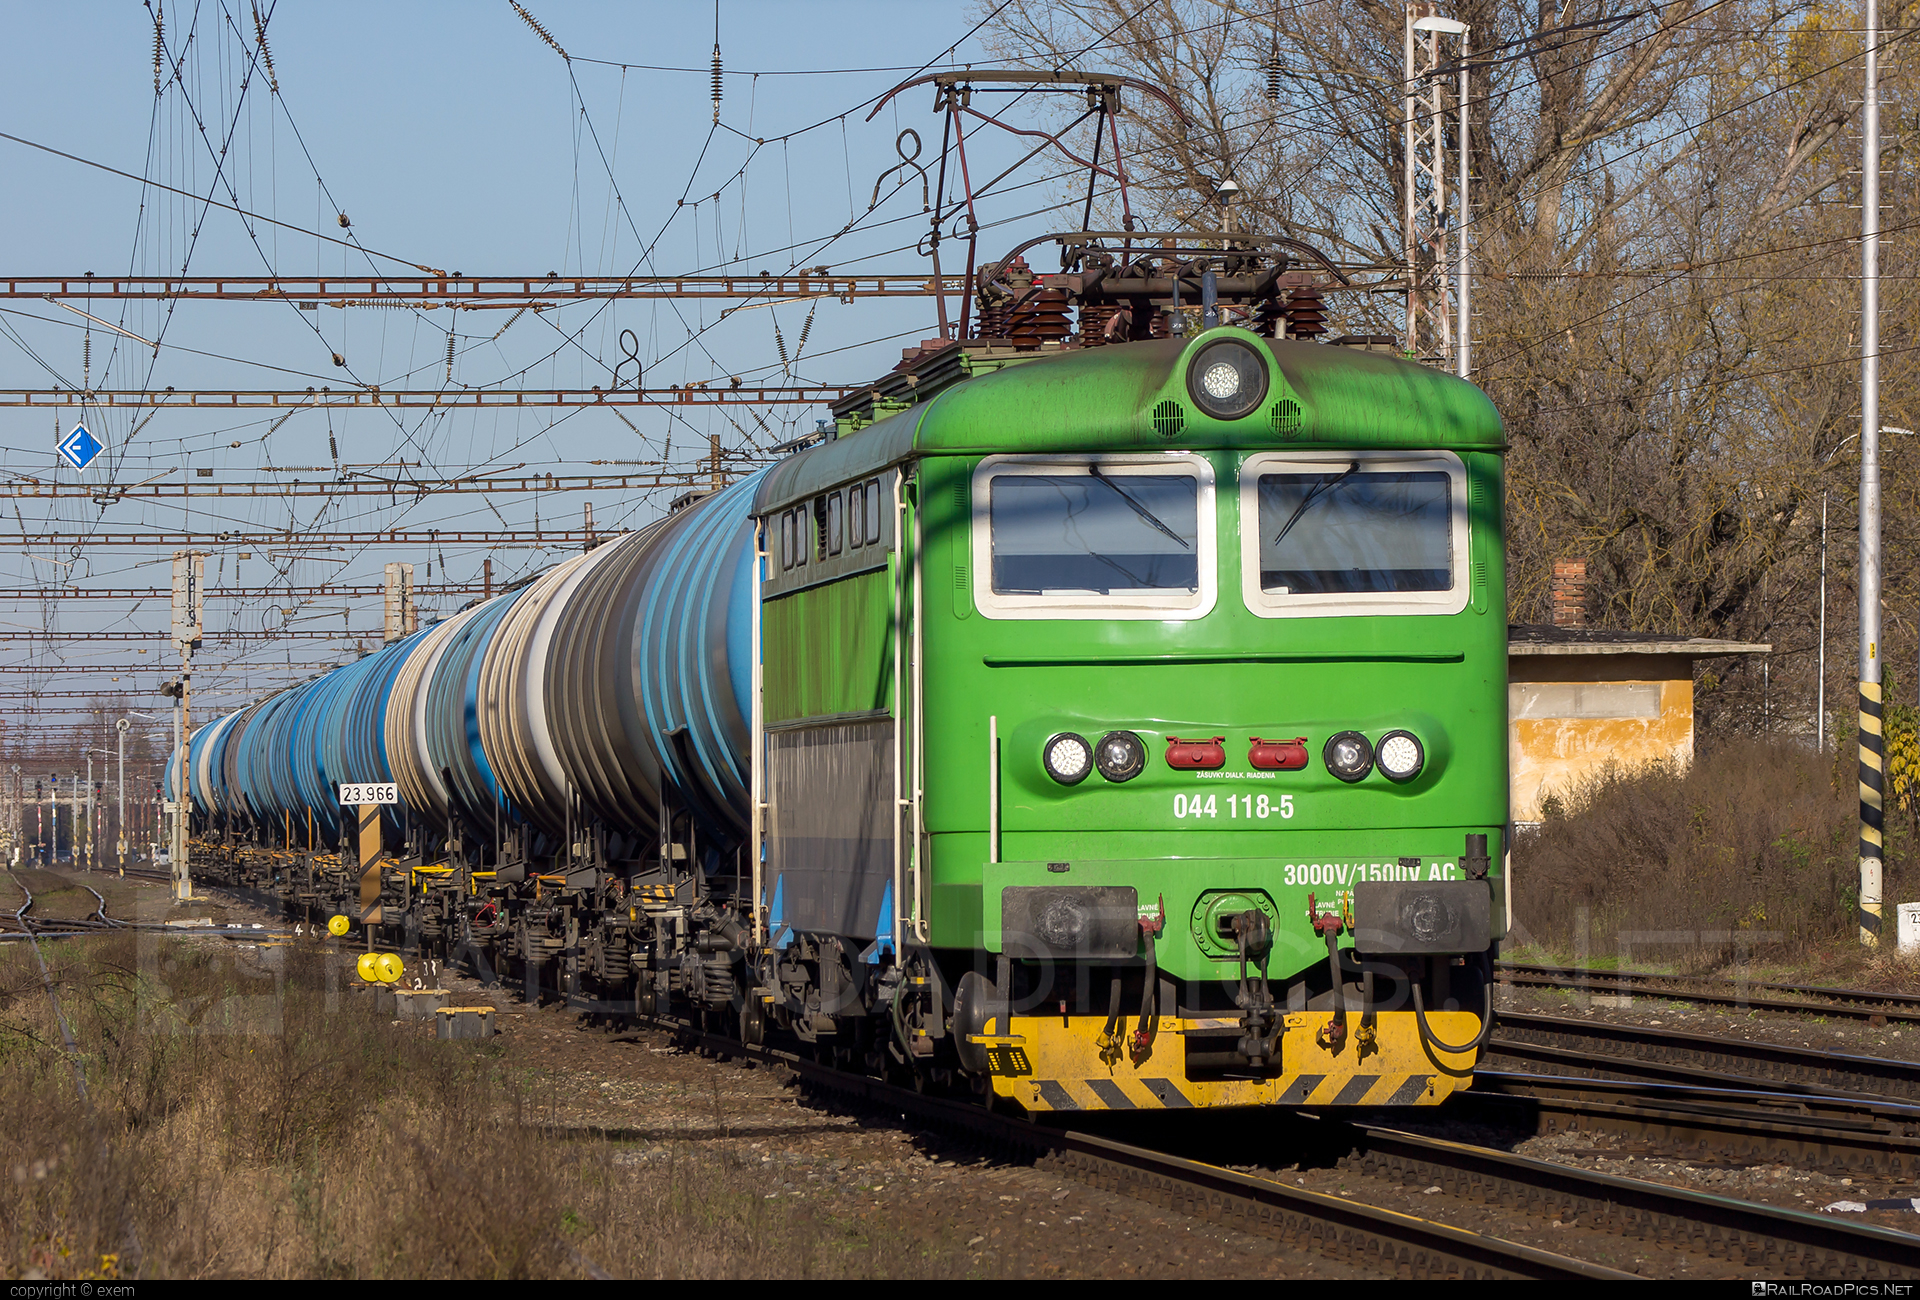 Škoda 73E - 044 118-5 operated by Railtrans International, s.r.o #kesselwagen #locomotive242 #plechac #railtrans #rti #skoda #skoda73e #tankwagon